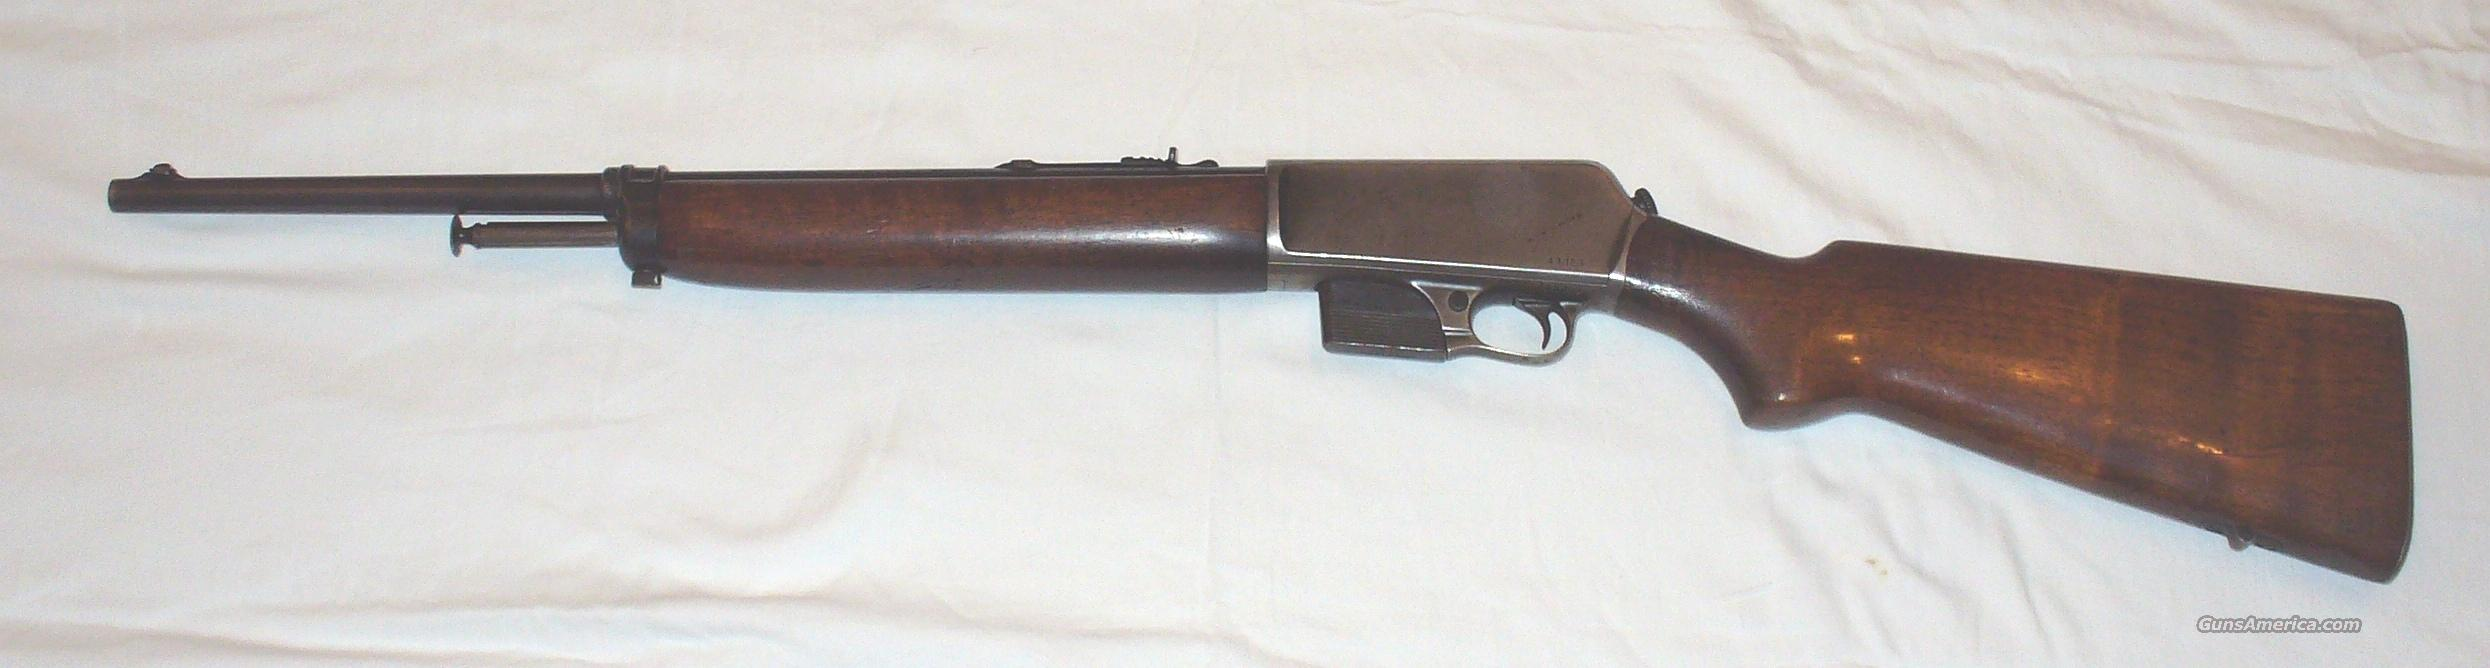 Winchester Model 1907 SL Semi-Auto Rifle  Guns > Rifles > Winchester Rifles - Modern Bolt/Auto/Single > Autoloaders